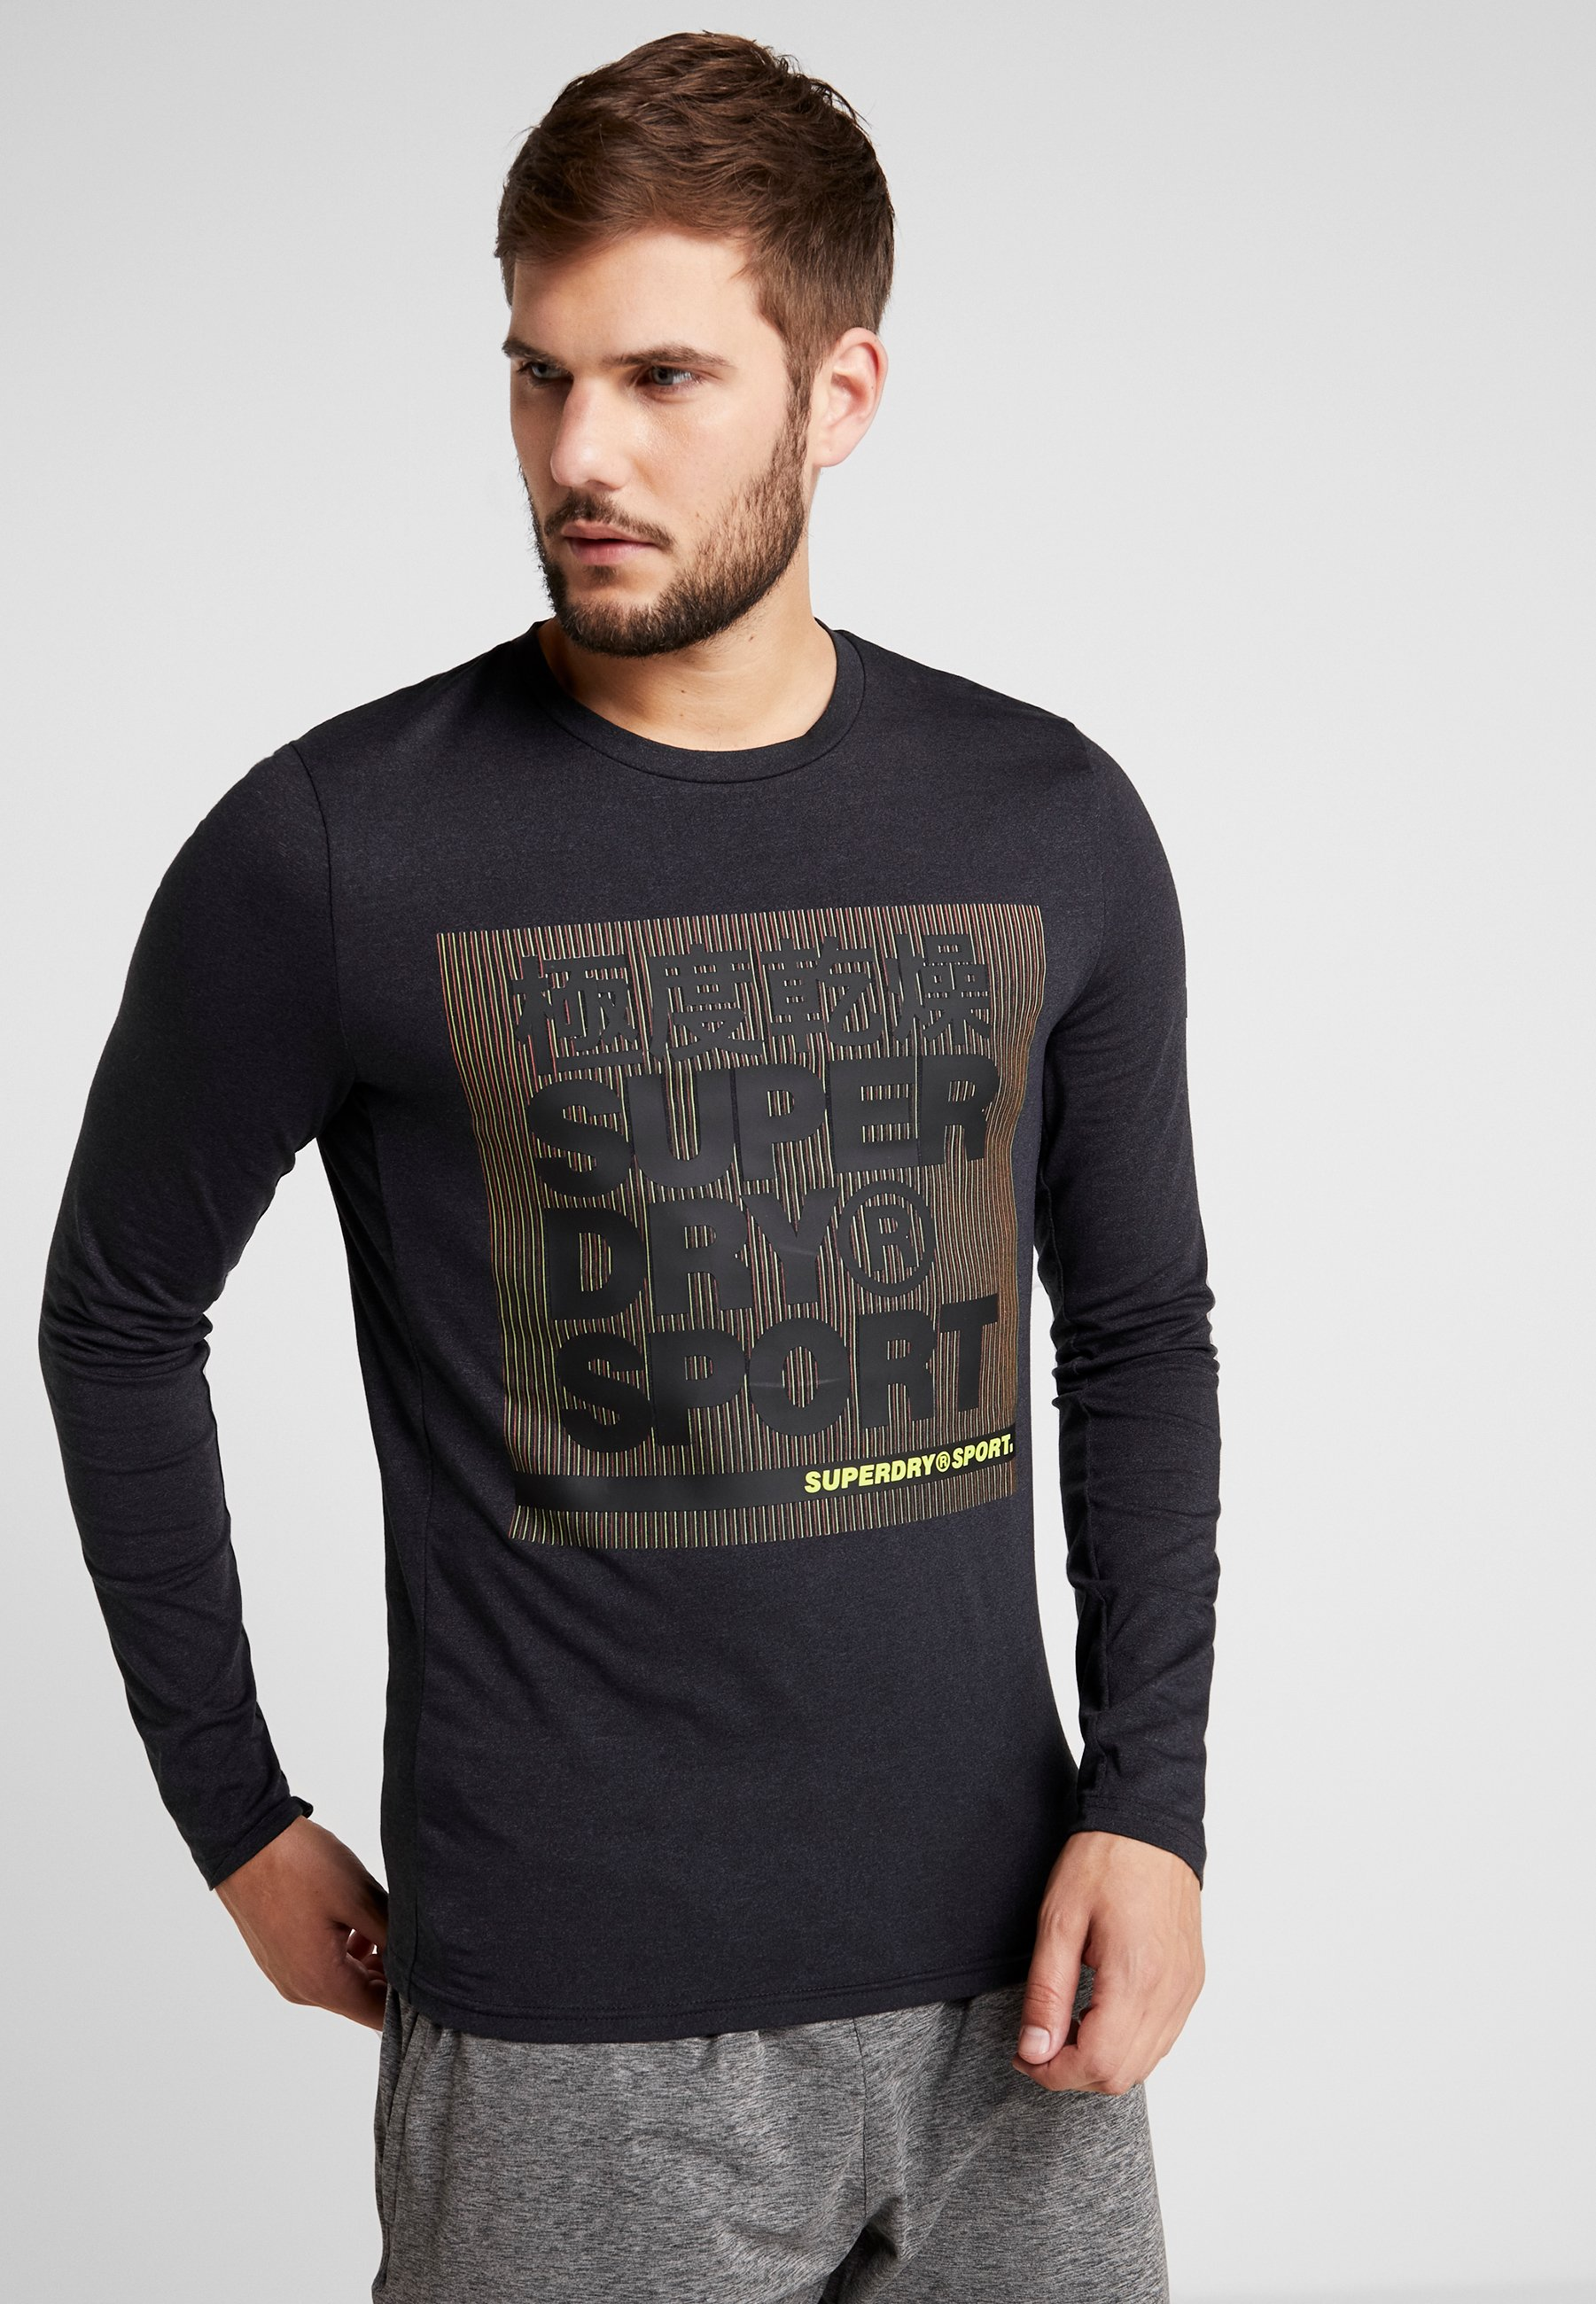 shirt Graphic À Black Superdry Manches TeeT Core Twist Longues D92WHYEI